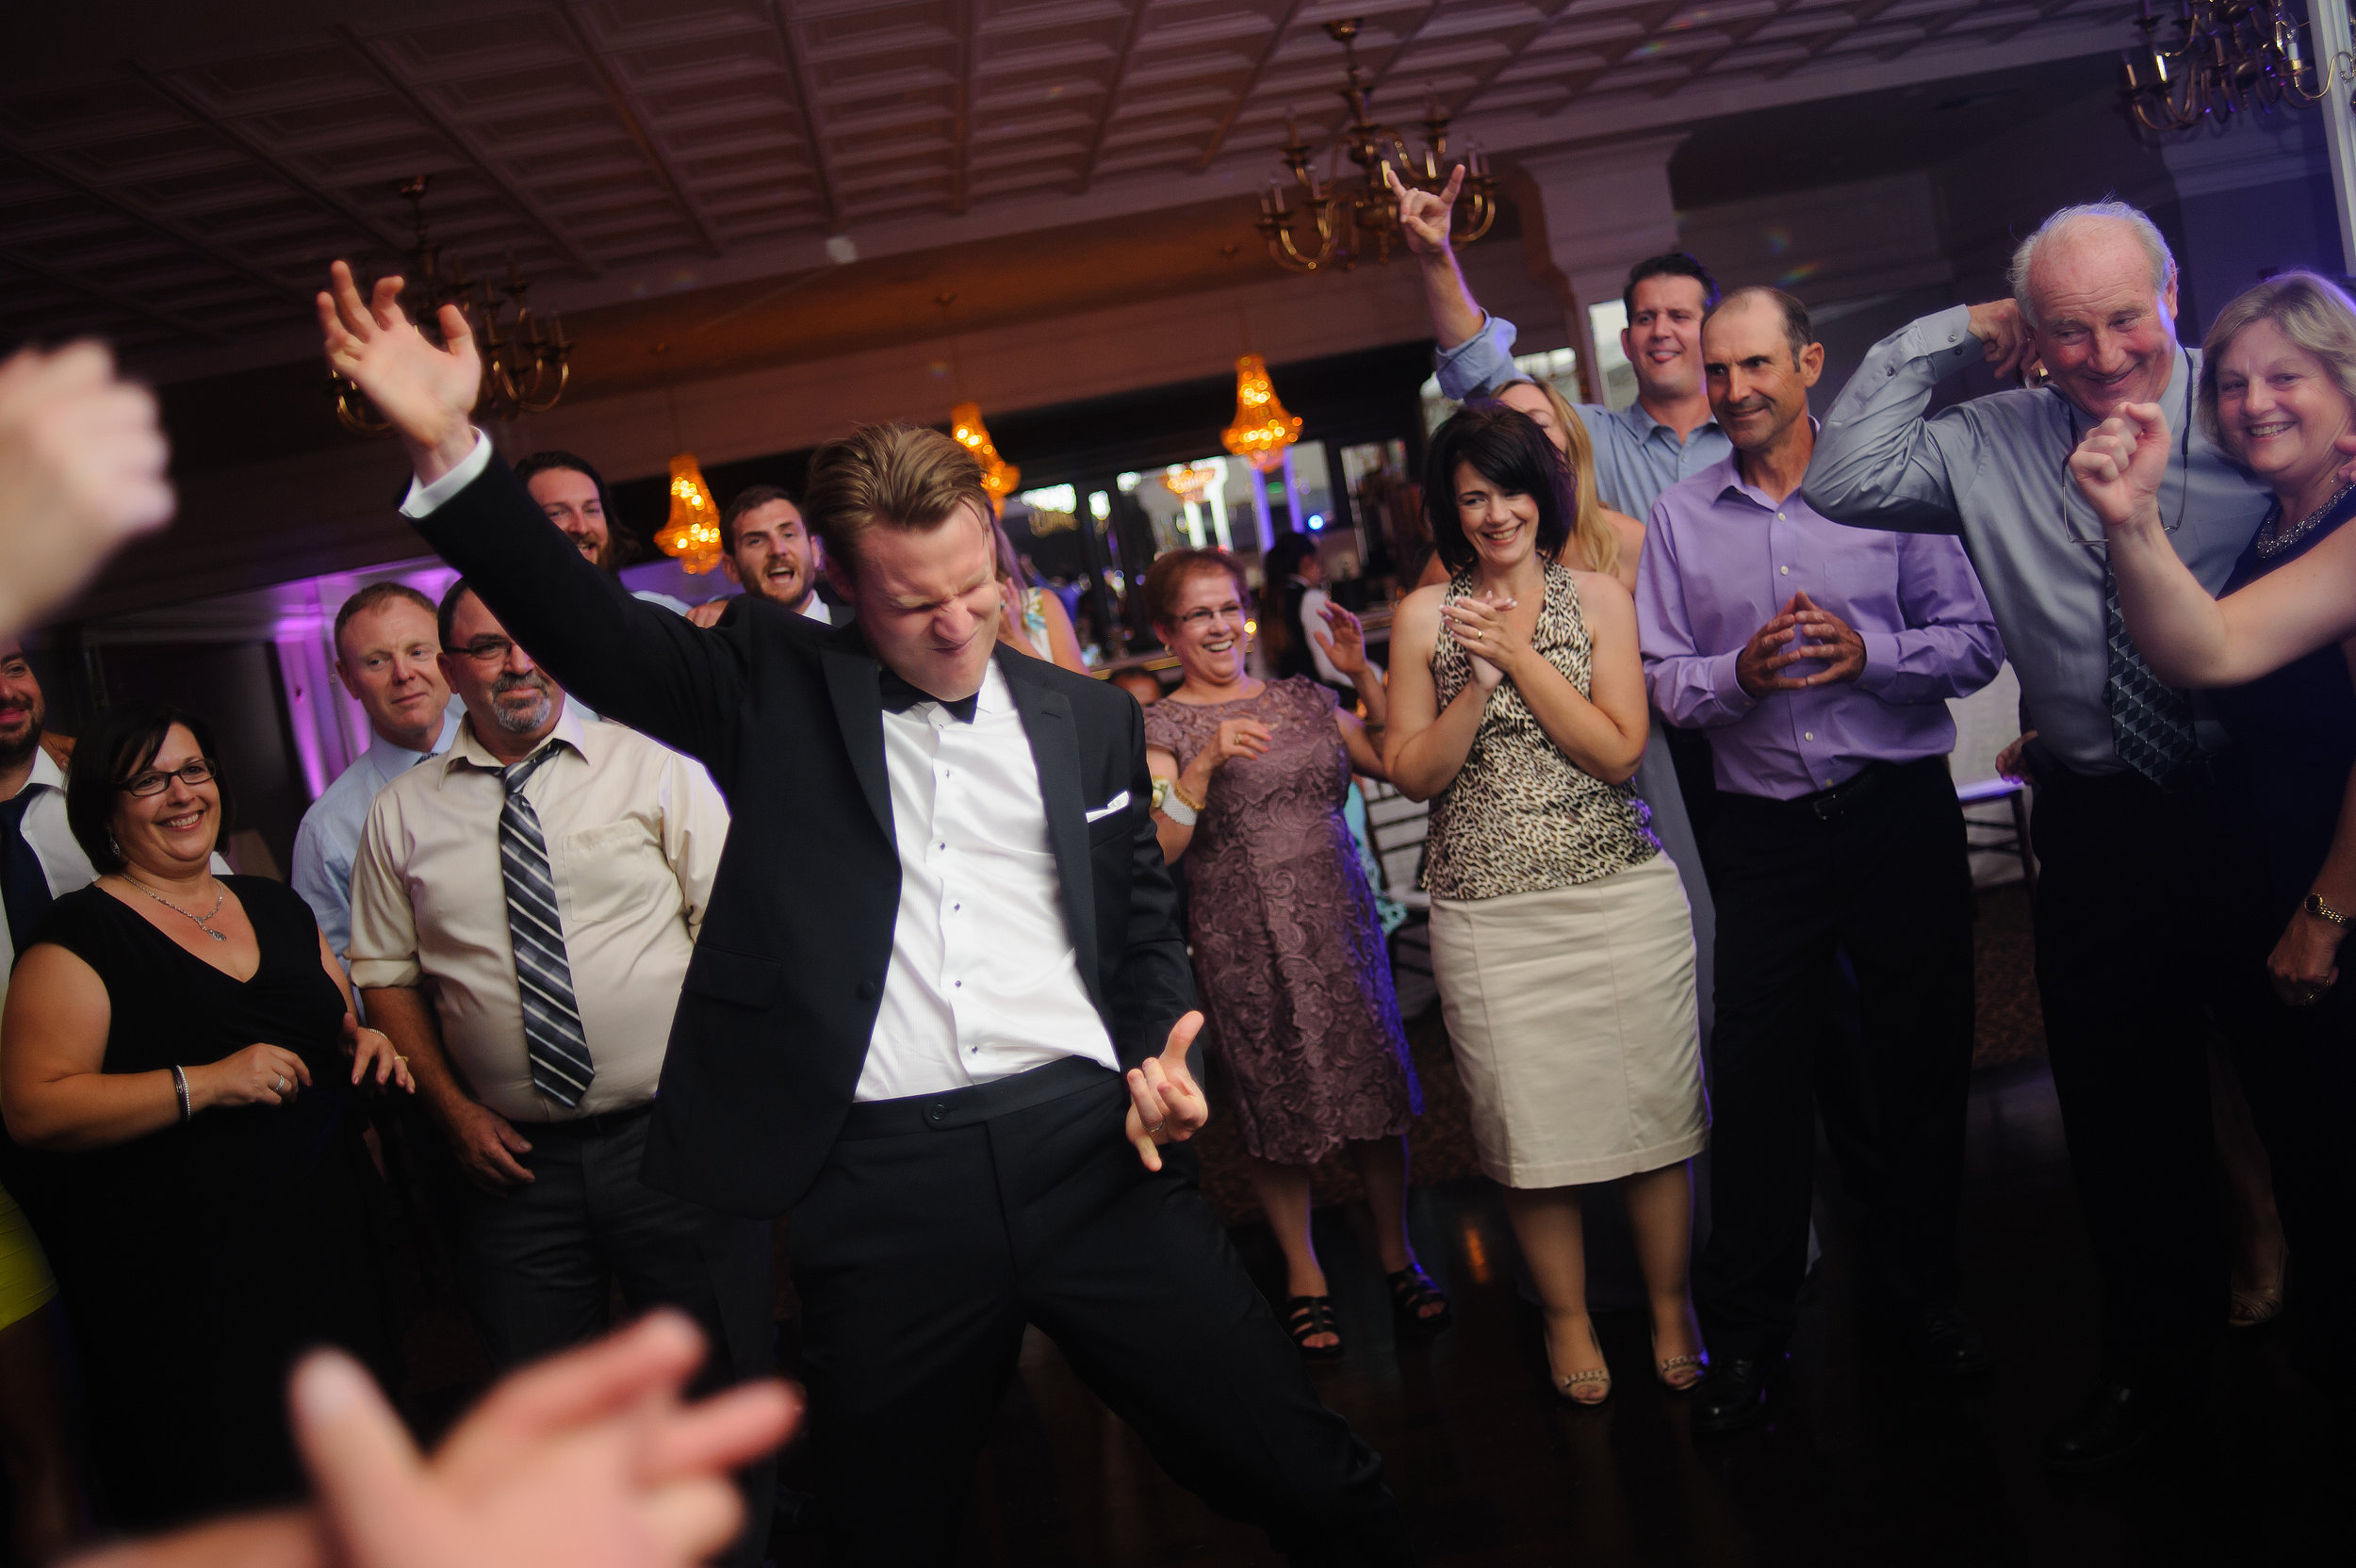 Groom dancing at reception during wedding at Arden Hills Club and Spa in Sacramento California.